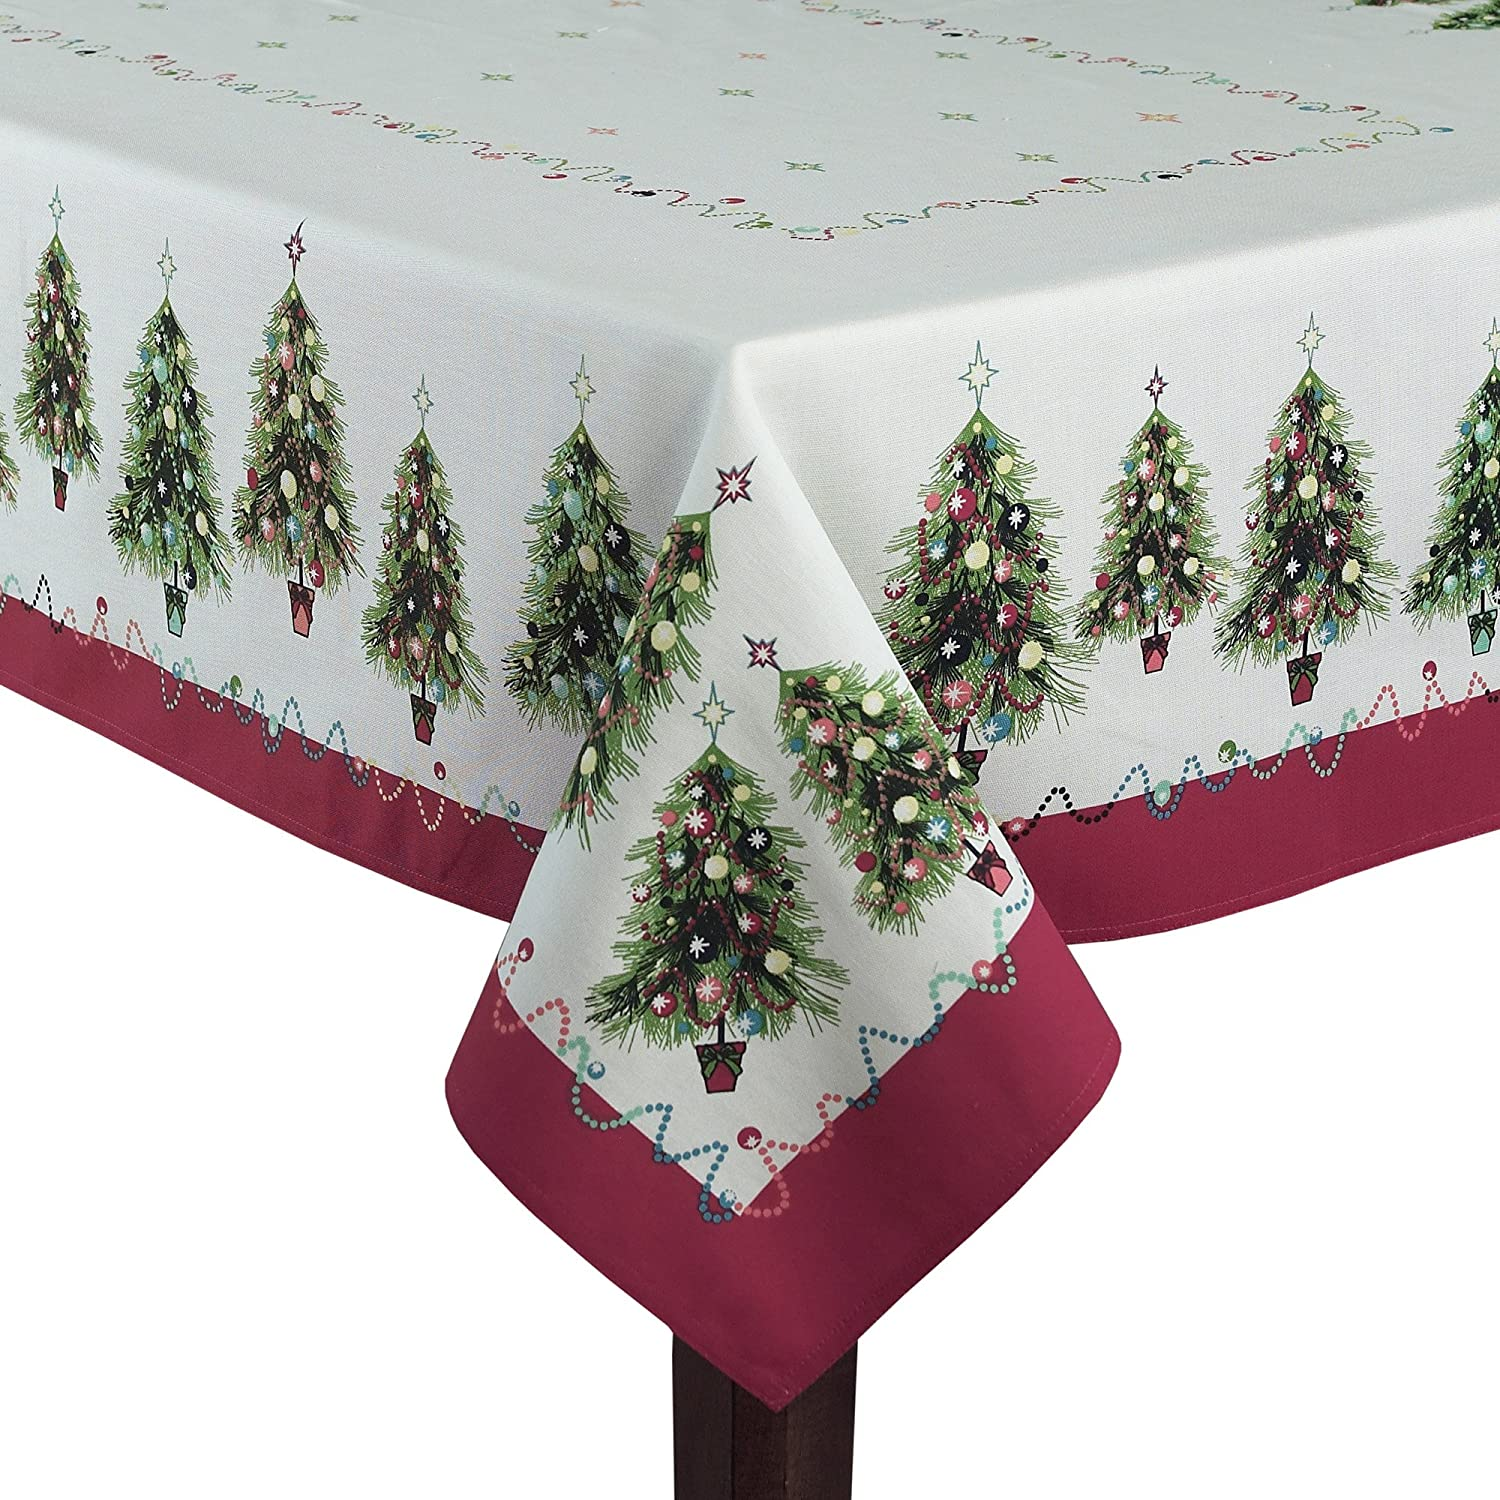 Tischdecken Weihnachten Christmas Trees Fabric Tablecloths | Christmas Wikii